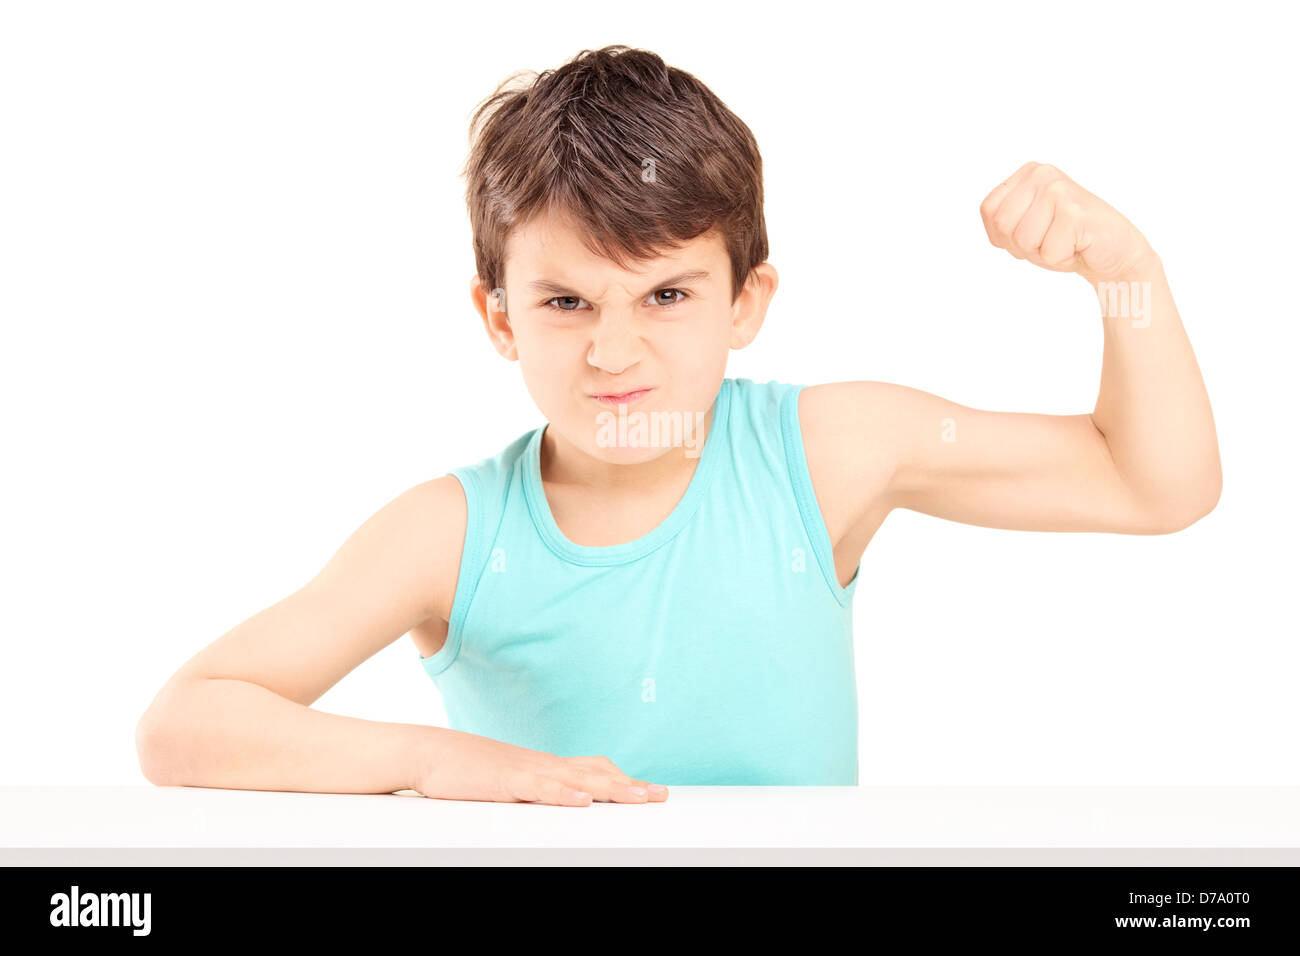 A mad child showing his muscles seated on a table isolated on white background - Stock Image